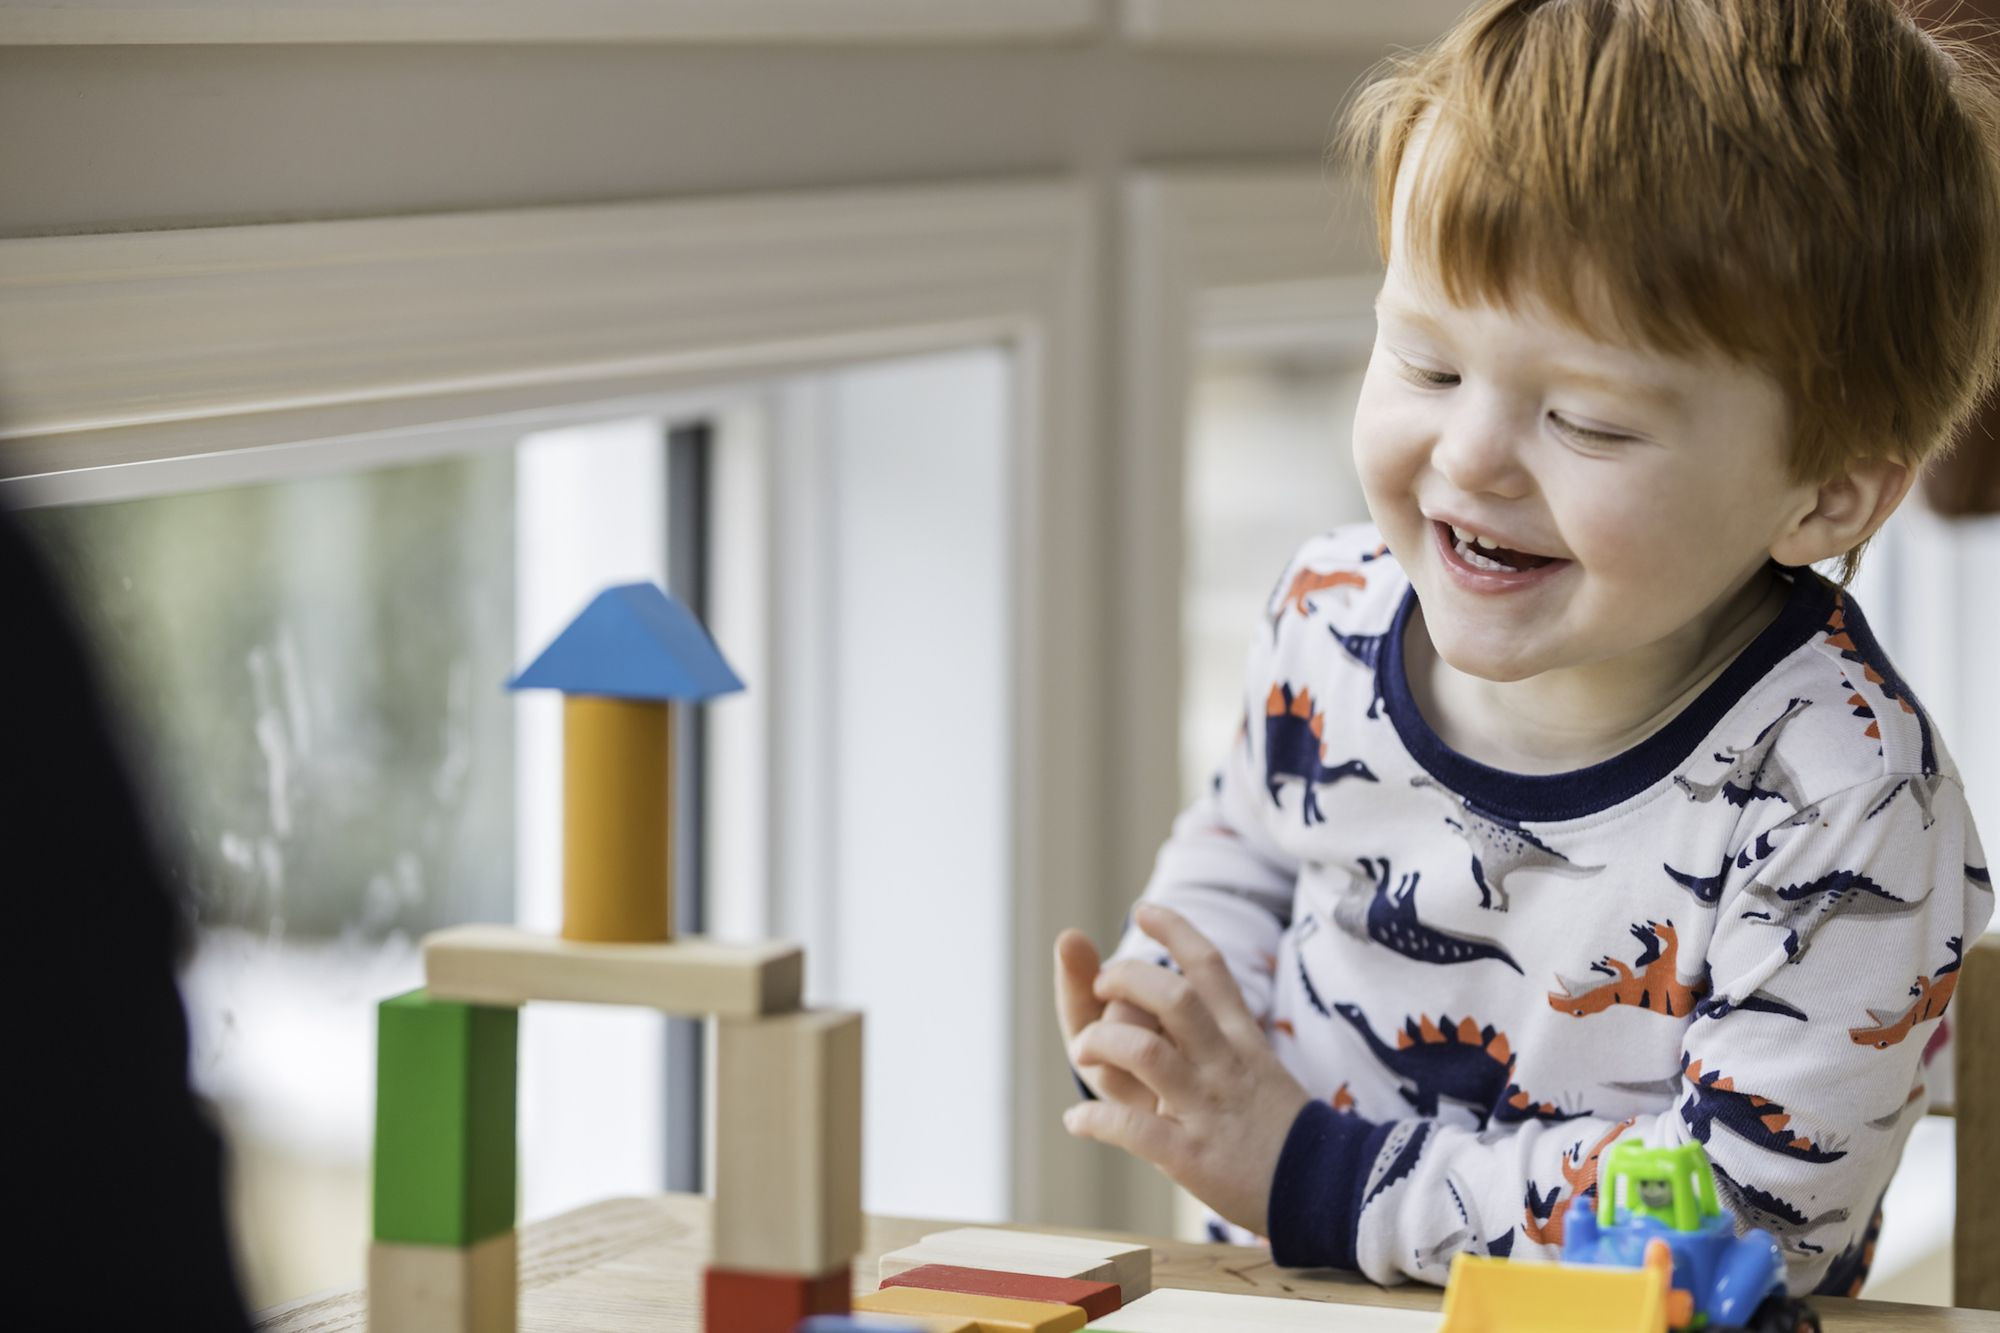 Gift Ideas For 3 Year Old Boys  The 28 Best Gifts for 3 Year Old Boys in 2020